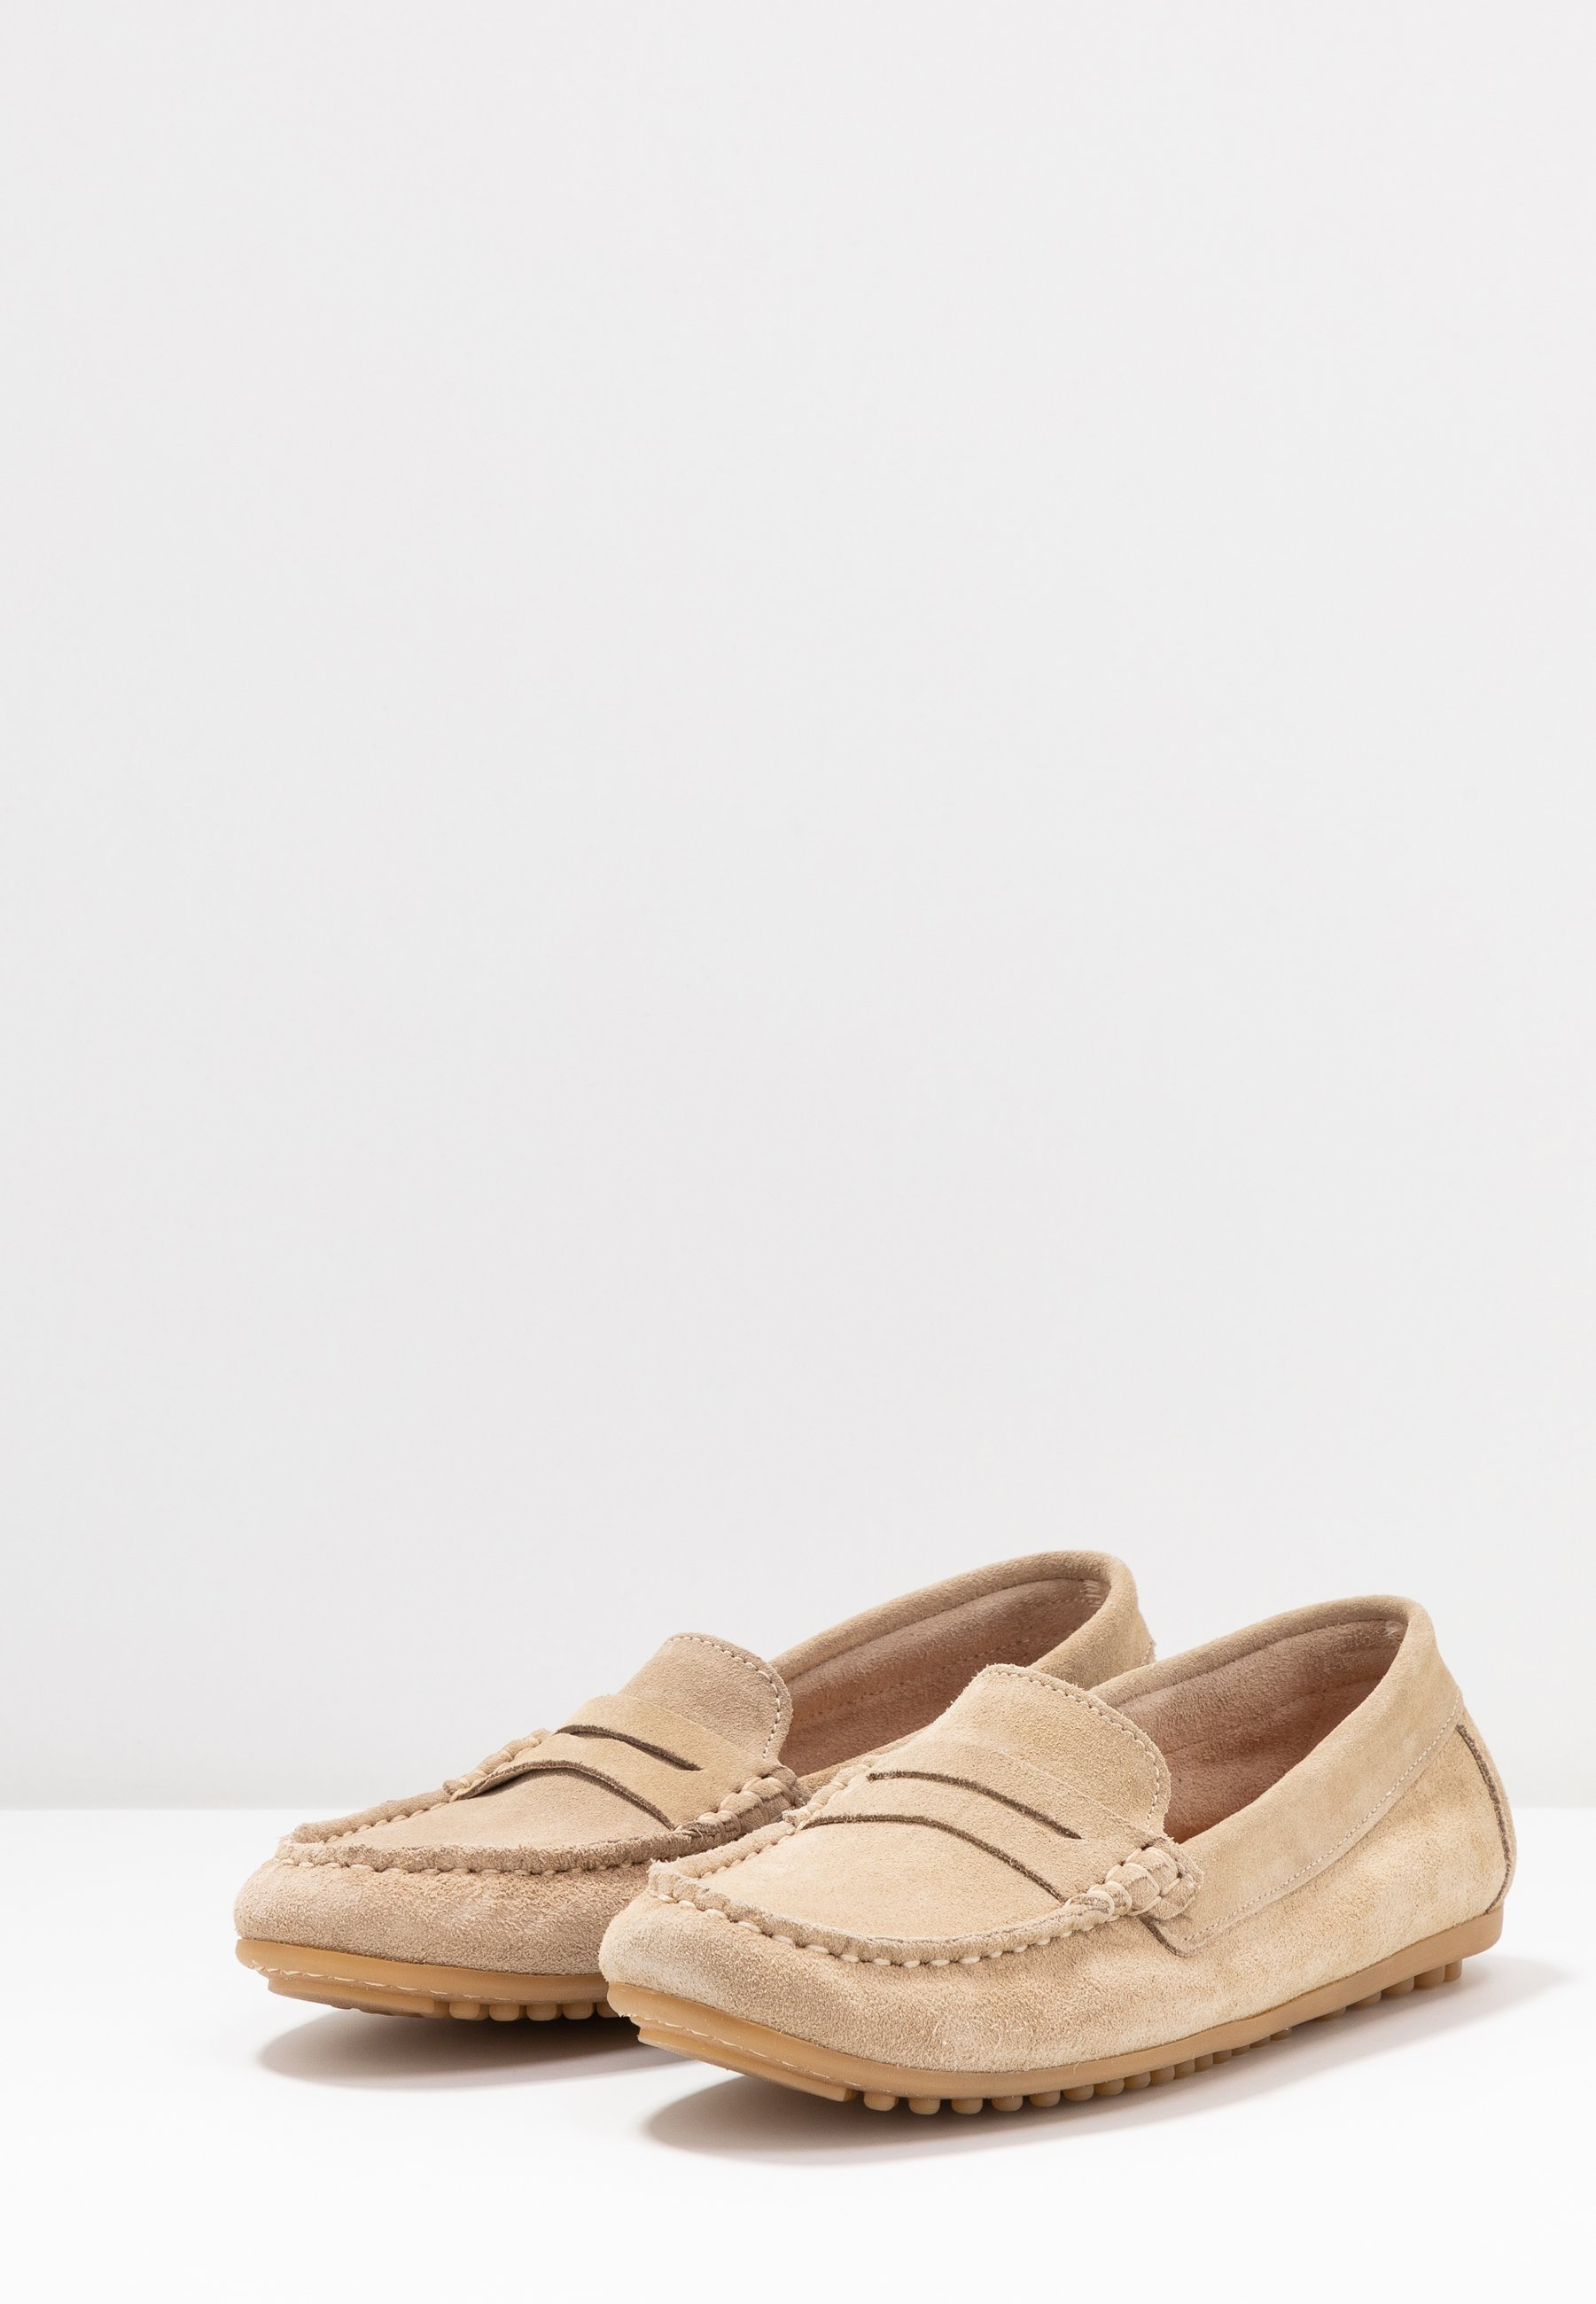 Anna Field LEATHER MOCCASINS Mokassin beige